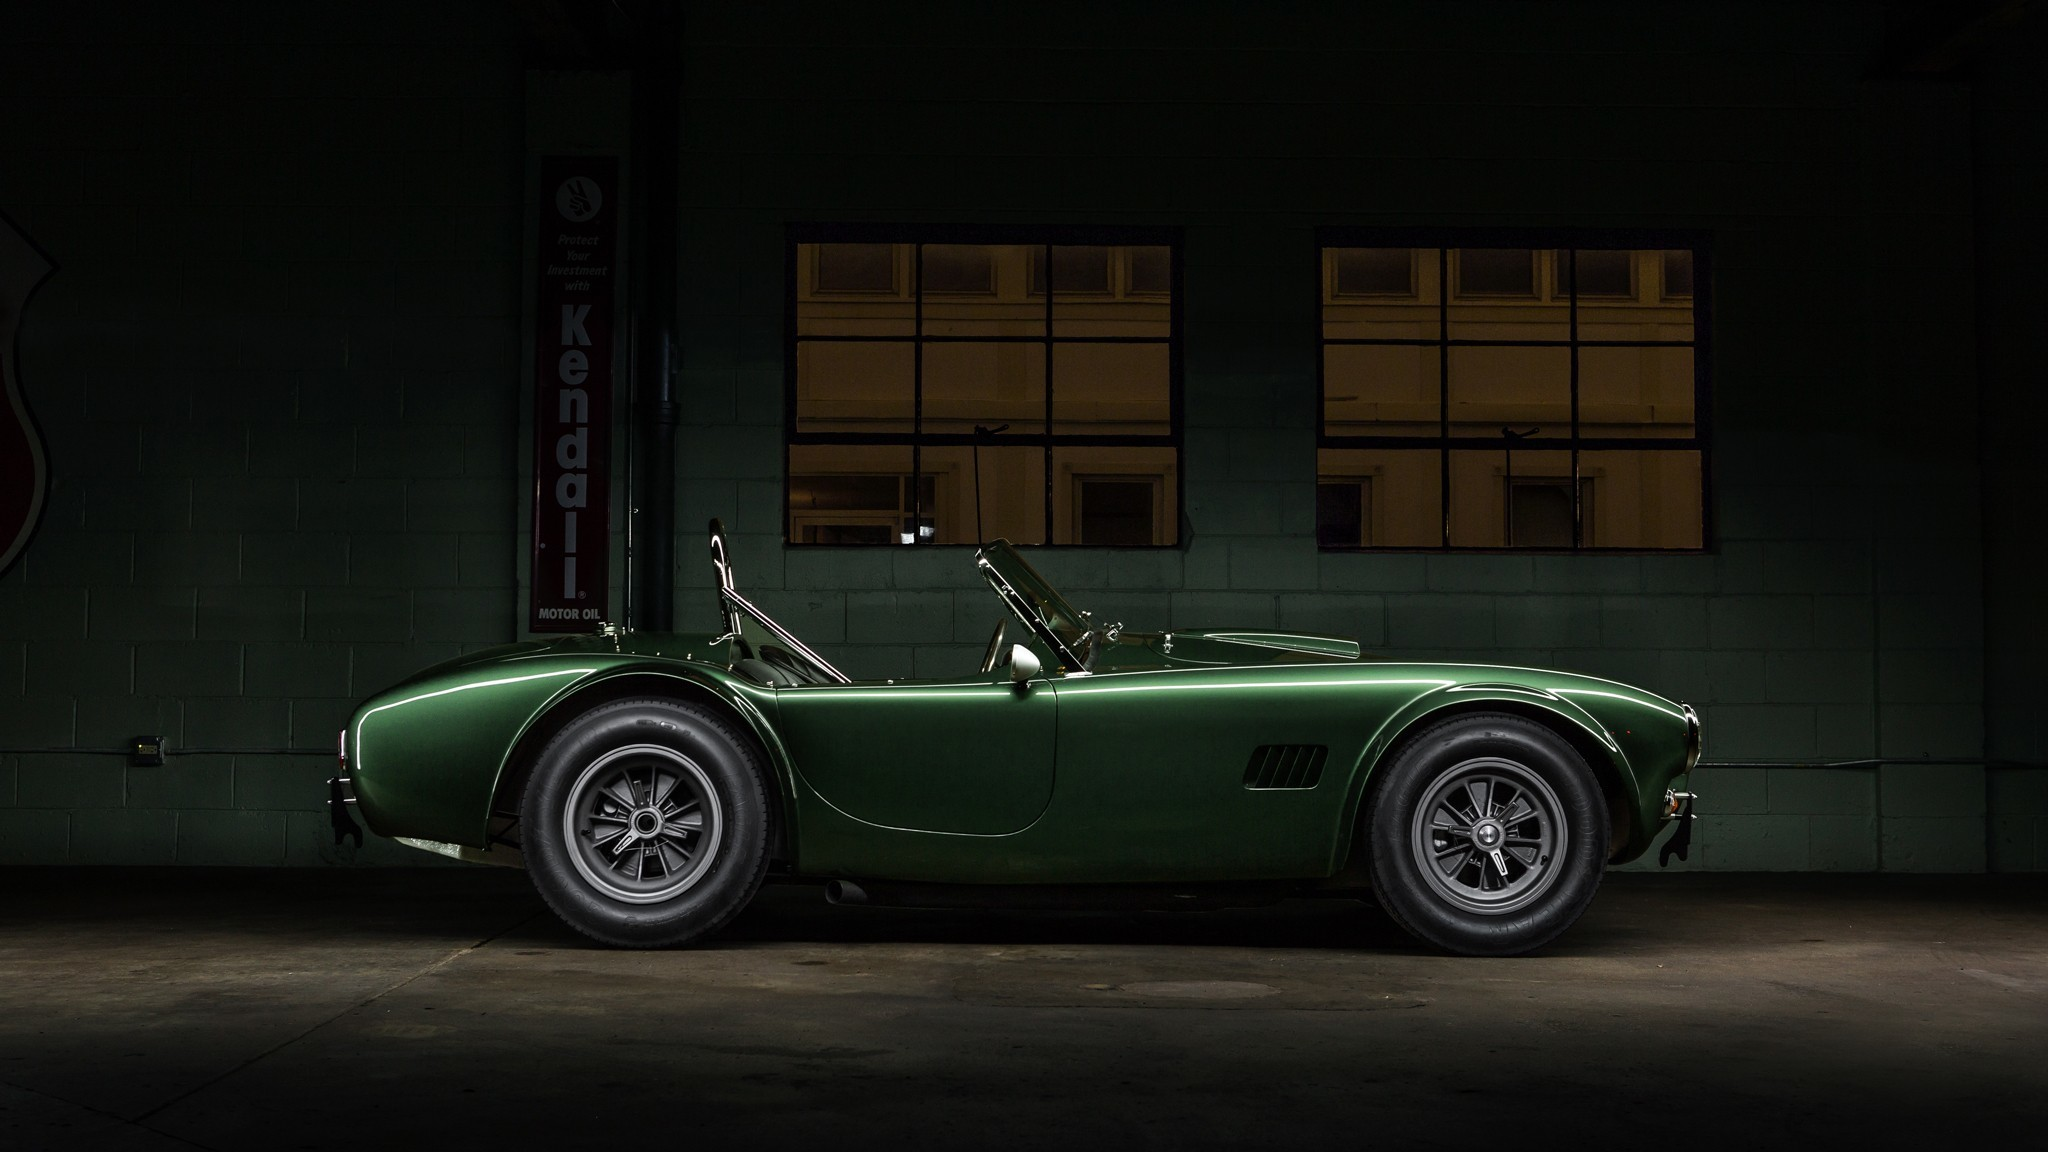 car, Green Cars, Vehicle, Shelby, Shelby Cobra Wallpapers HD / Desktop and  Mobile Backgrounds